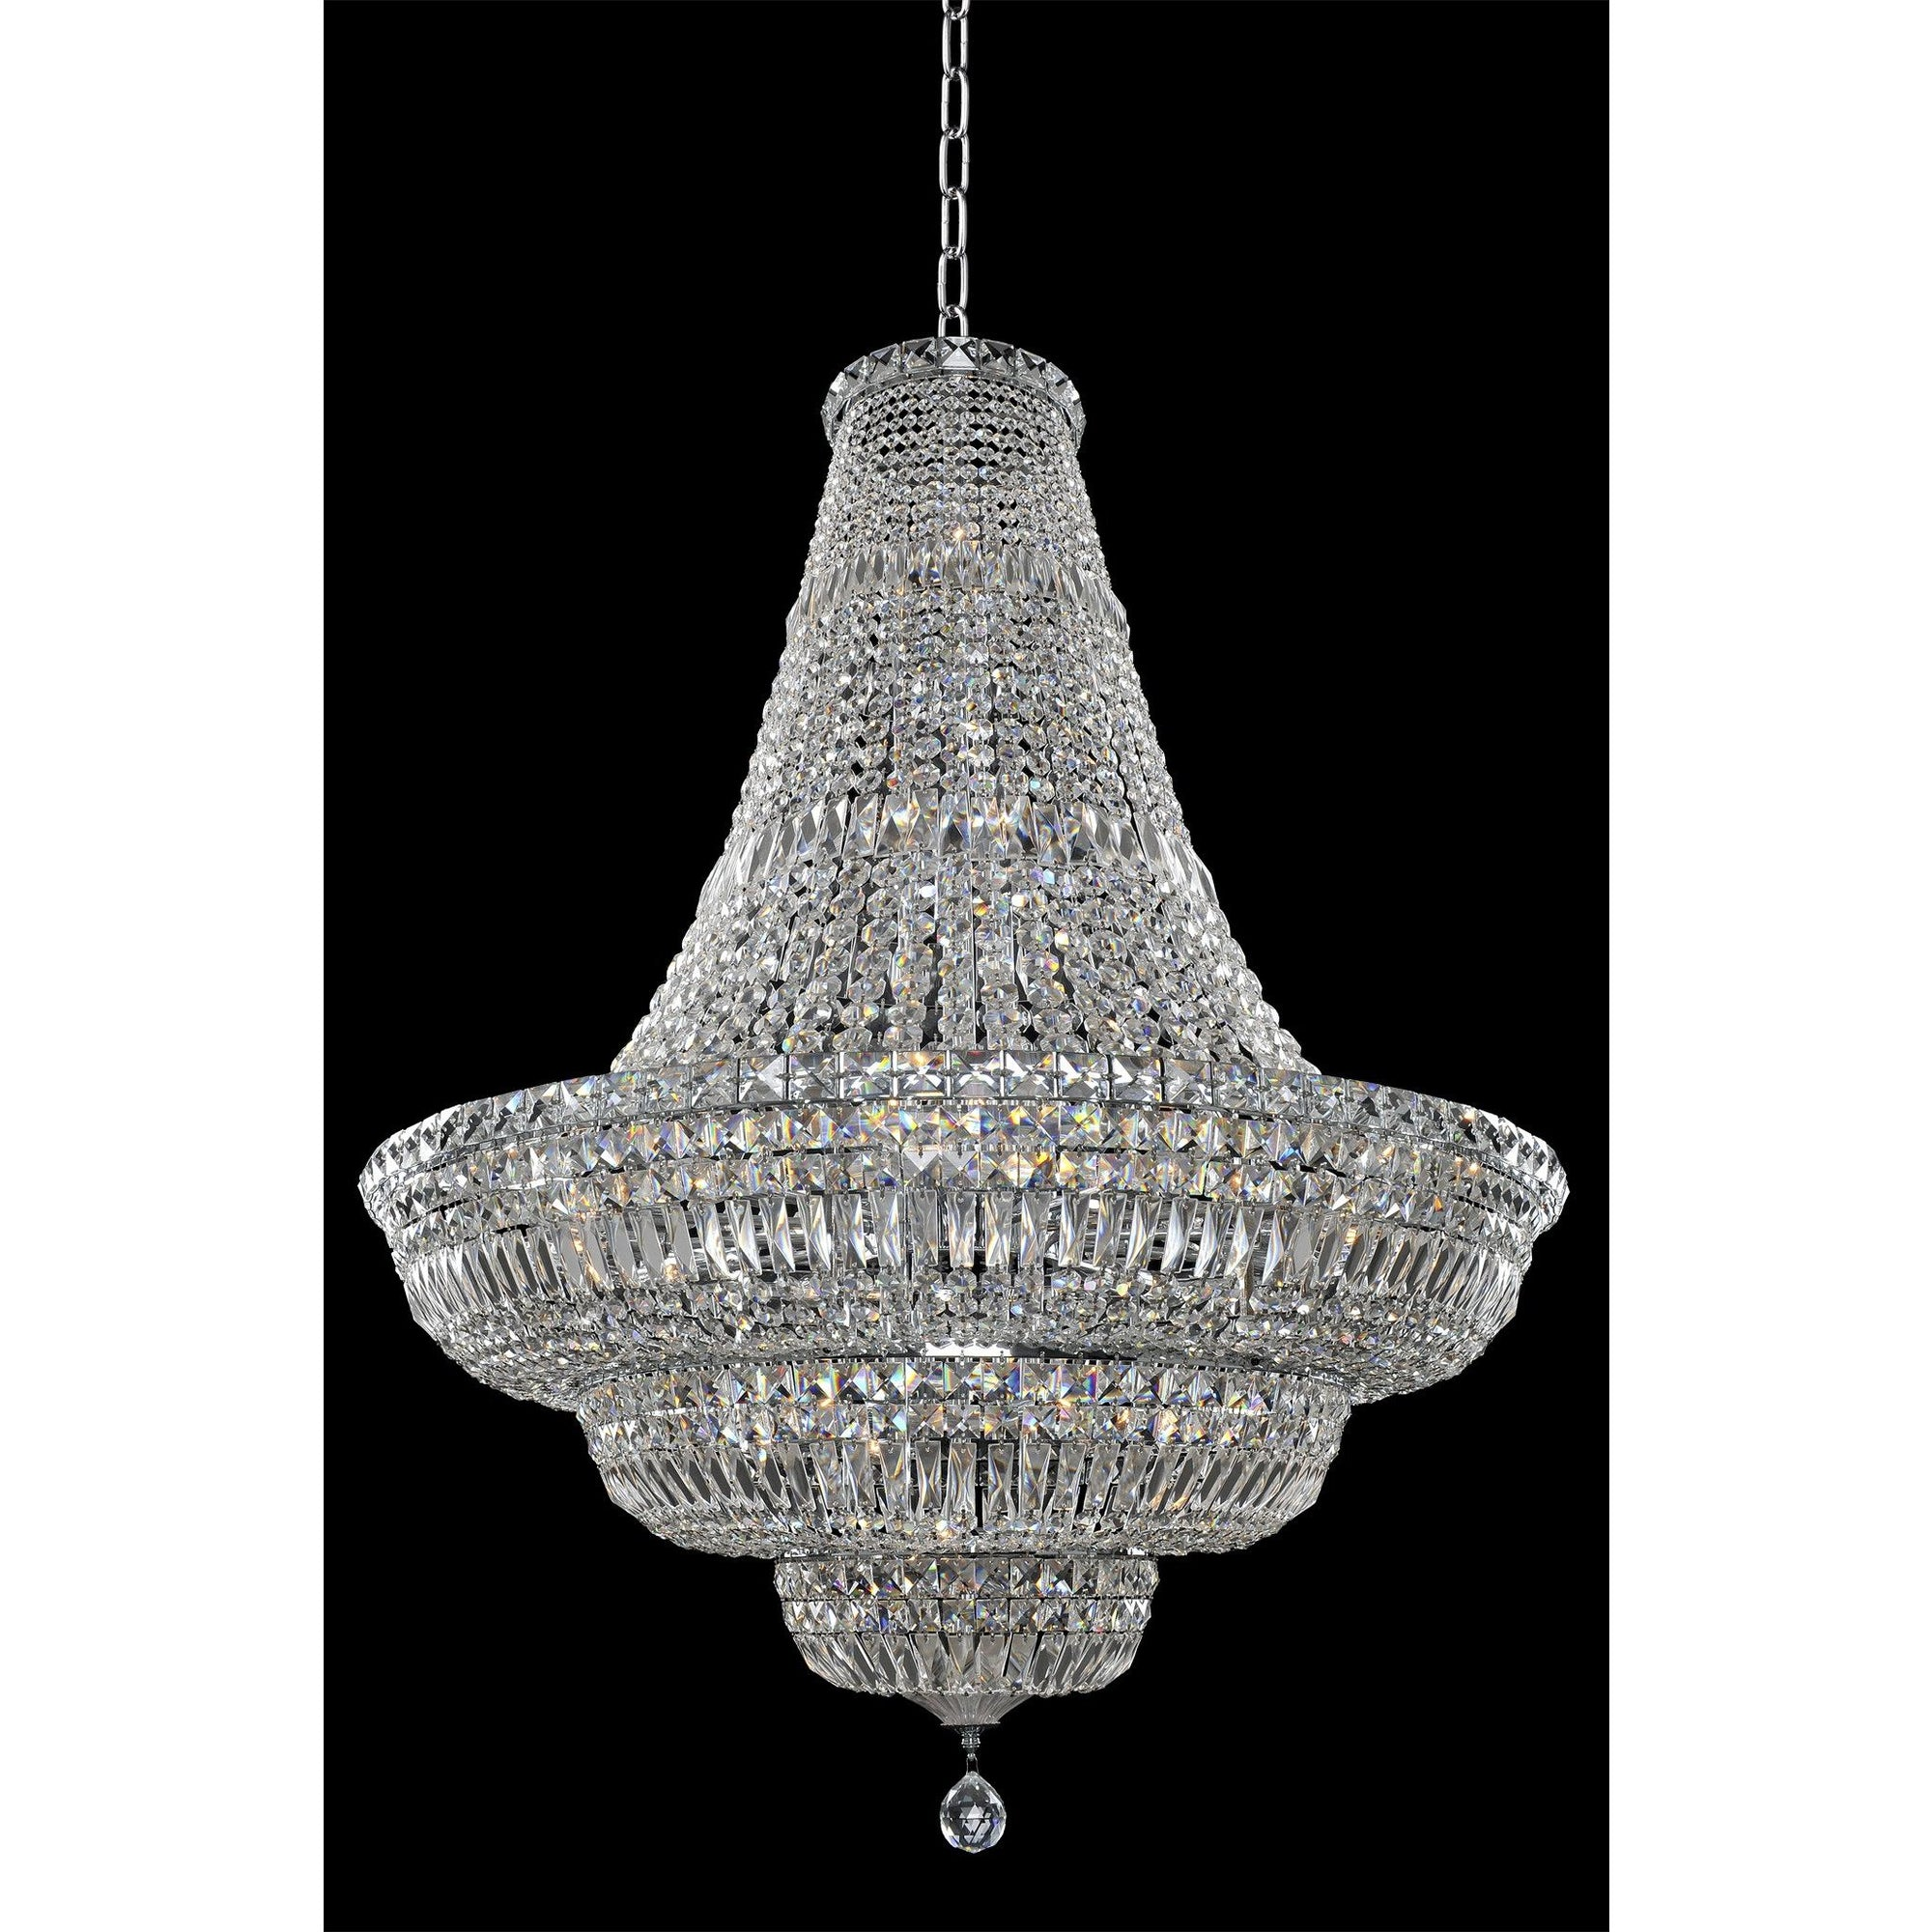 Allegri by Kalco Lighting Pendants Chrome / Firenze Clear Betti 36 Inch Pendant From Allegri by Kalco Lighting 020271